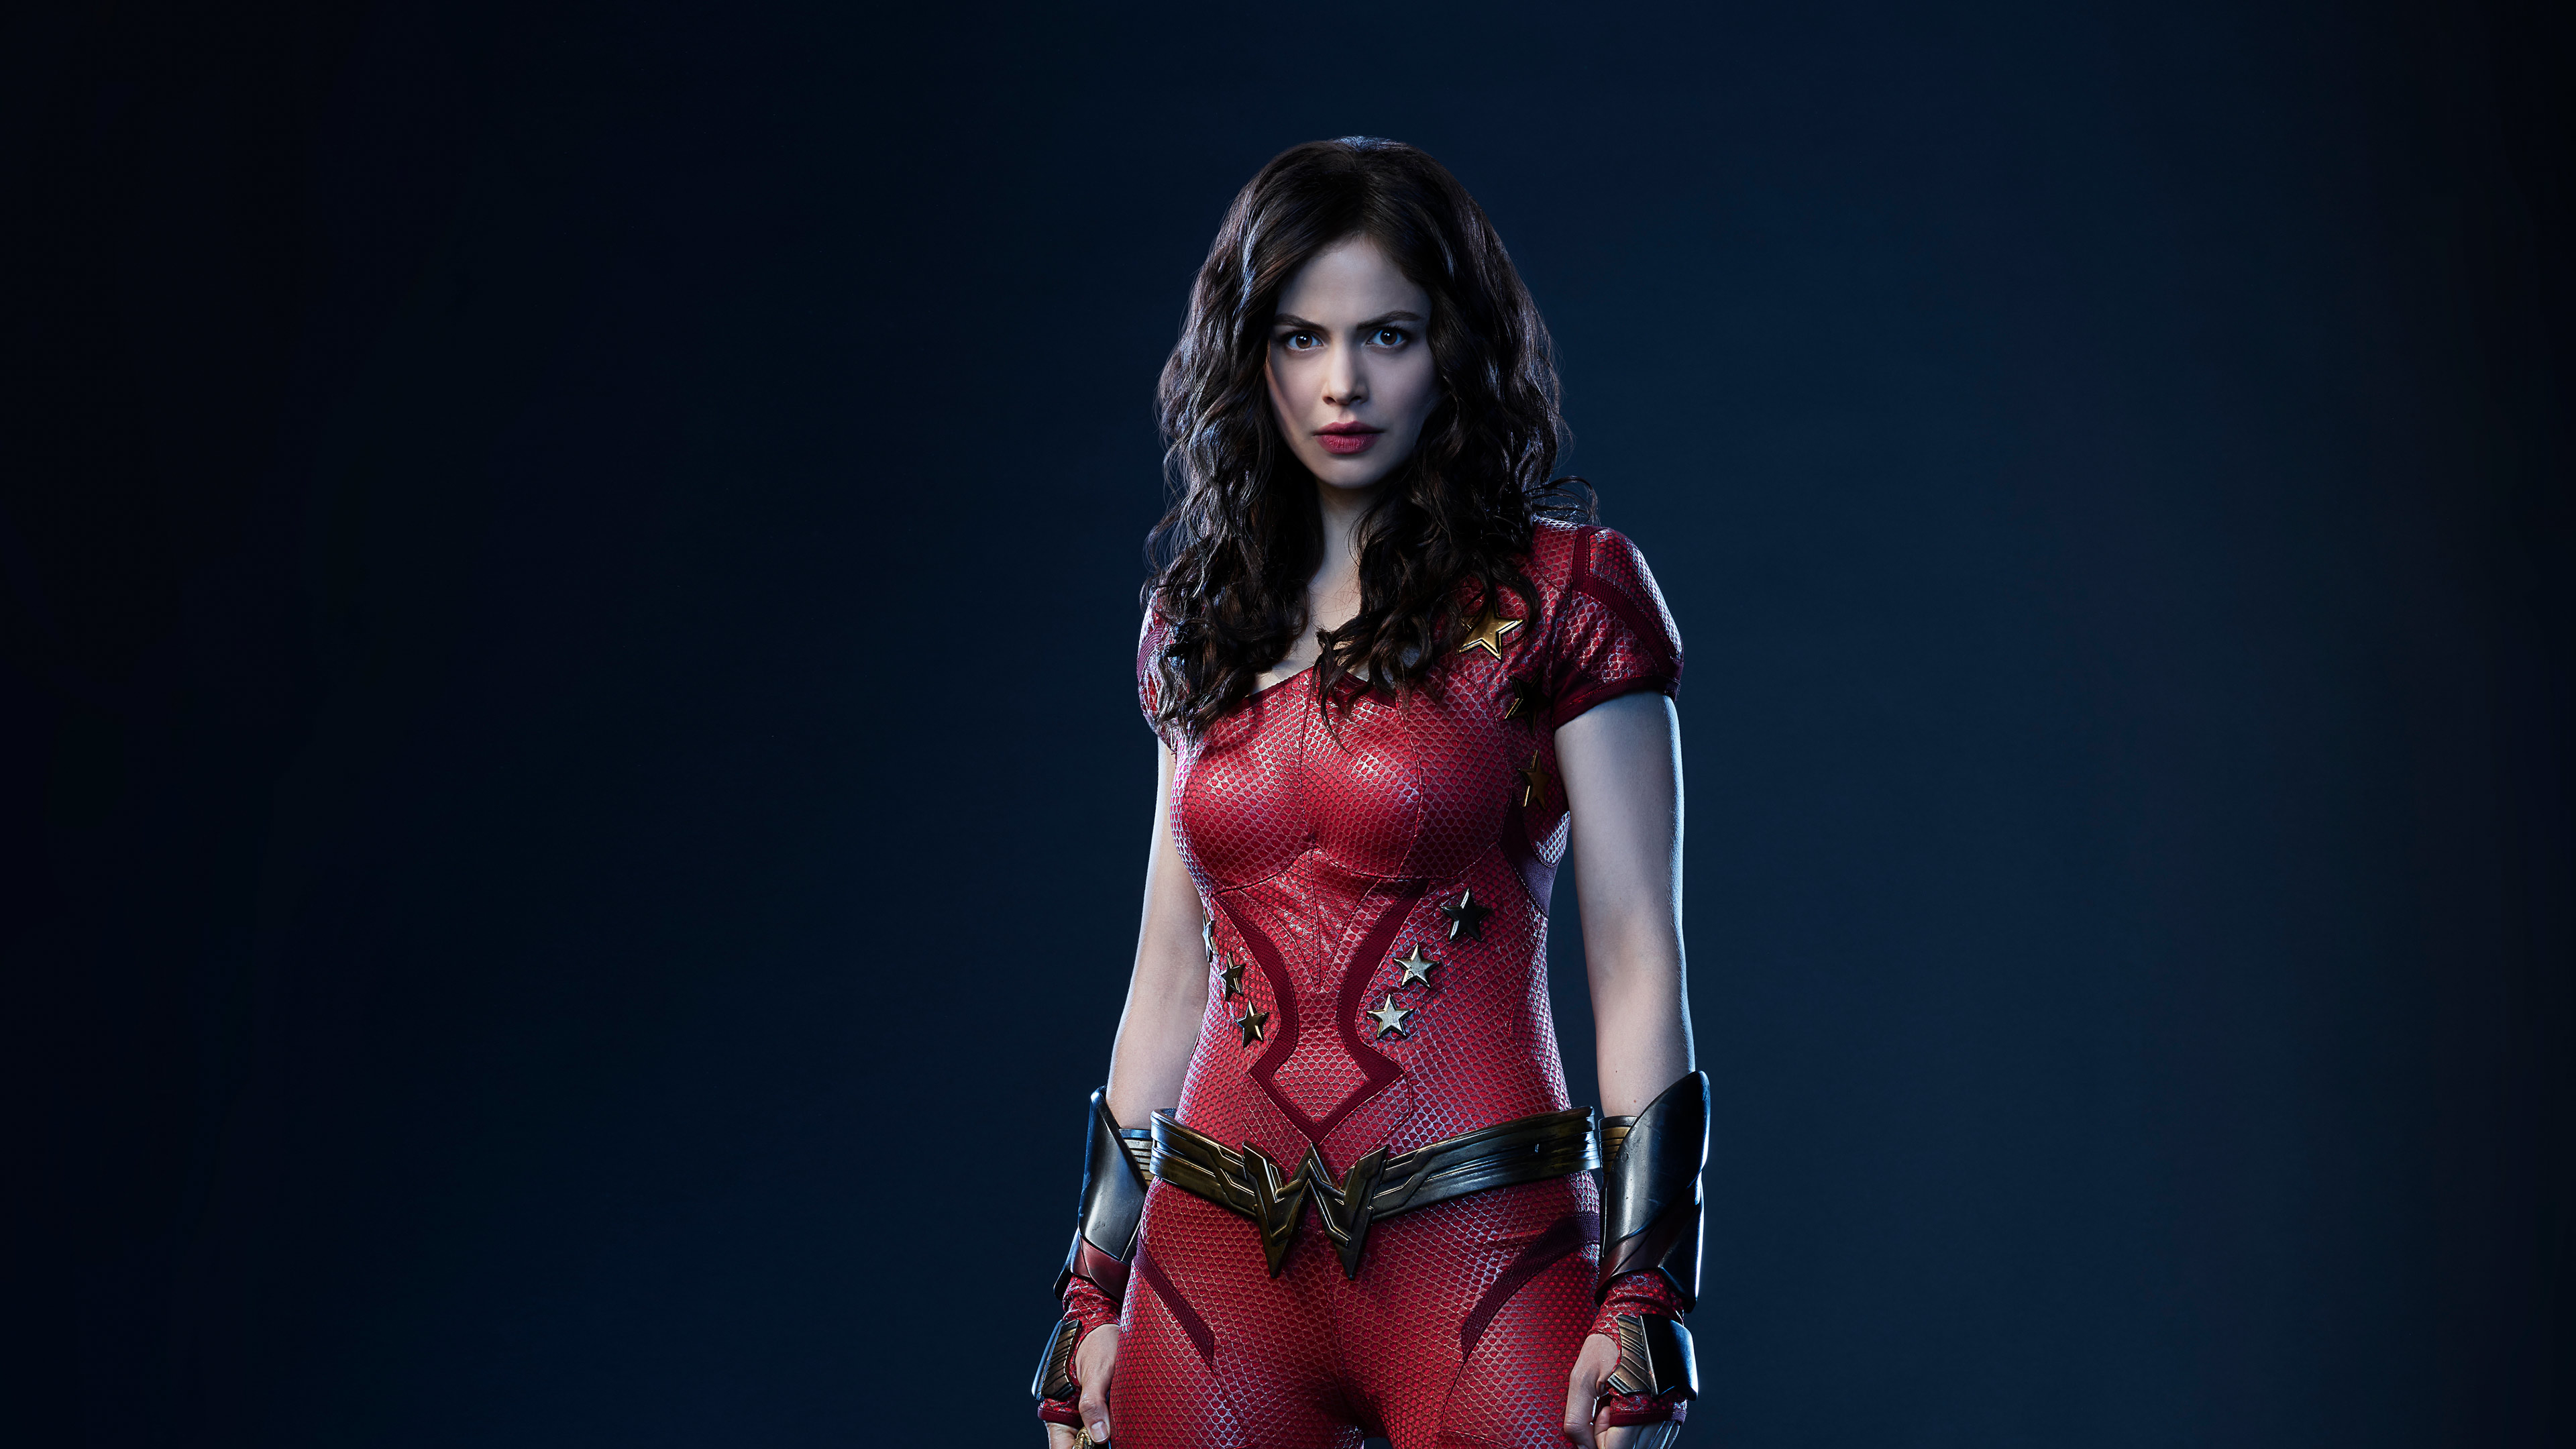 conor leslie as donna troy in titans 1578253249 - Conor Leslie As Donna Troy In Titans - Conor Leslie As Donna Troy In Titans 4k wallpaper